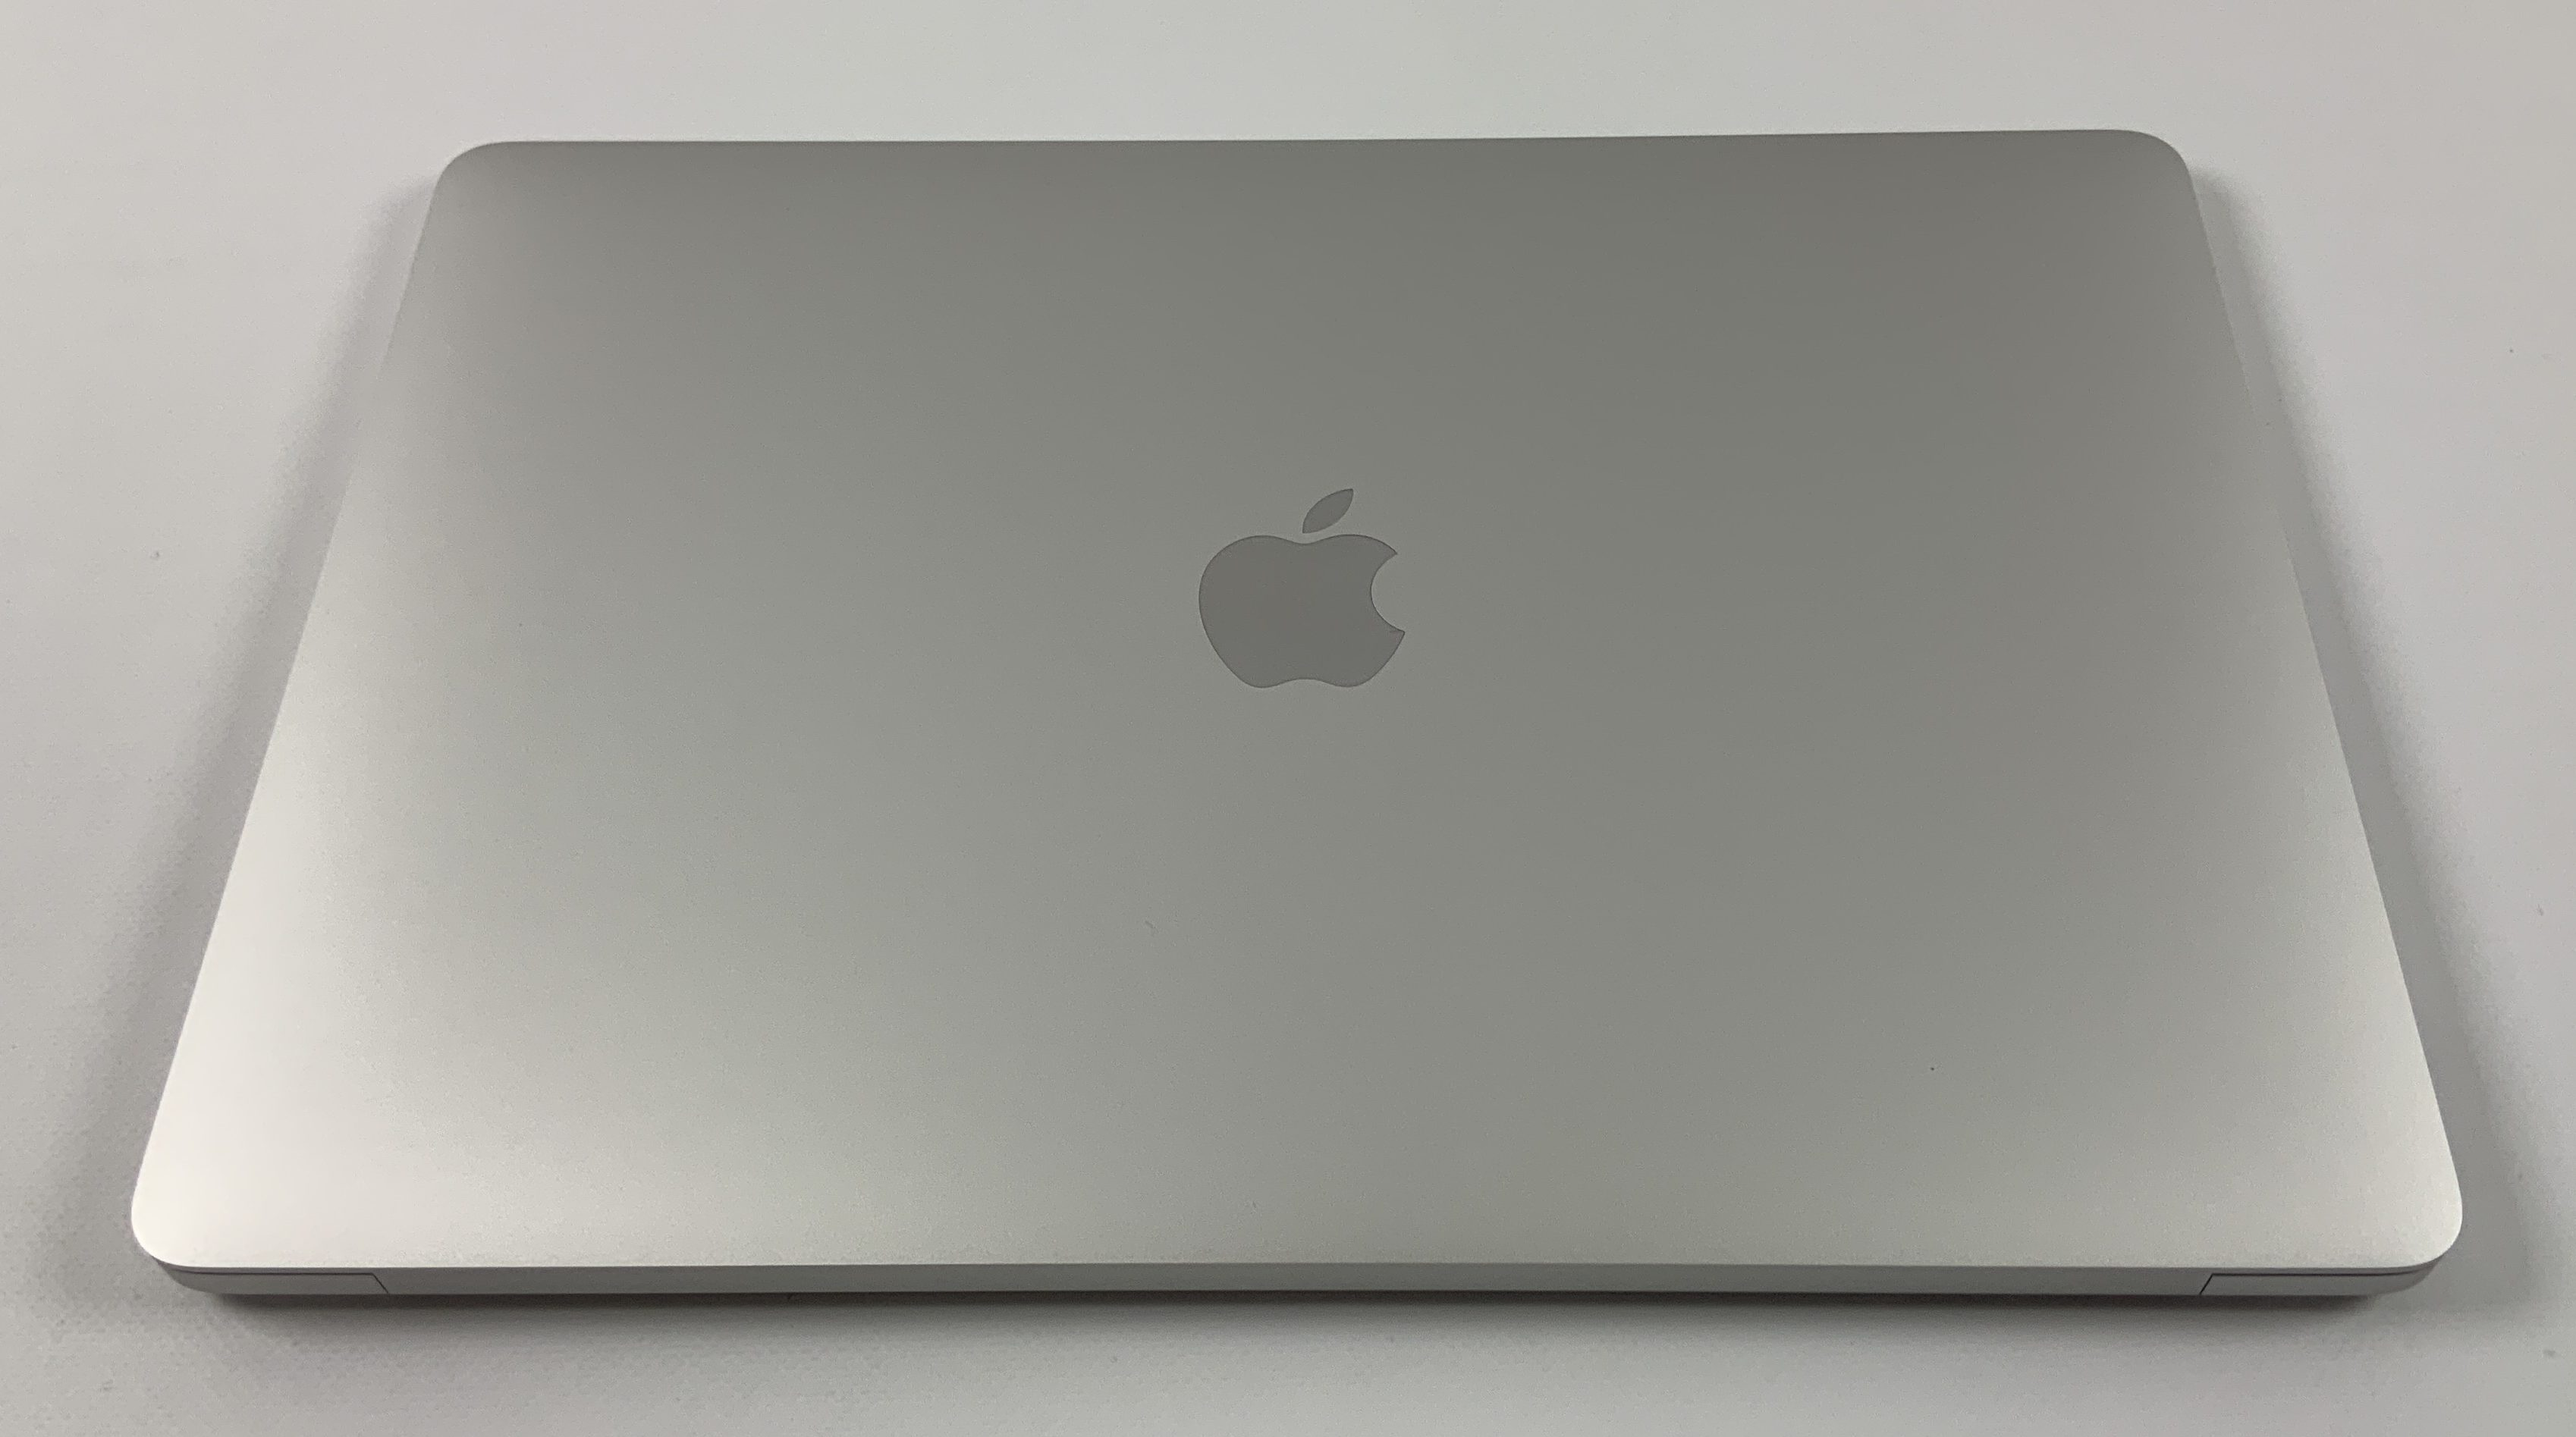 "MacBook Air 13"" Late 2018 (Intel Core i5 1.6 GHz 16 GB RAM 512 GB SSD), Silver, Intel Core i5 1.6 GHz, 16 GB RAM, 512 GB SSD, Kuva 2"